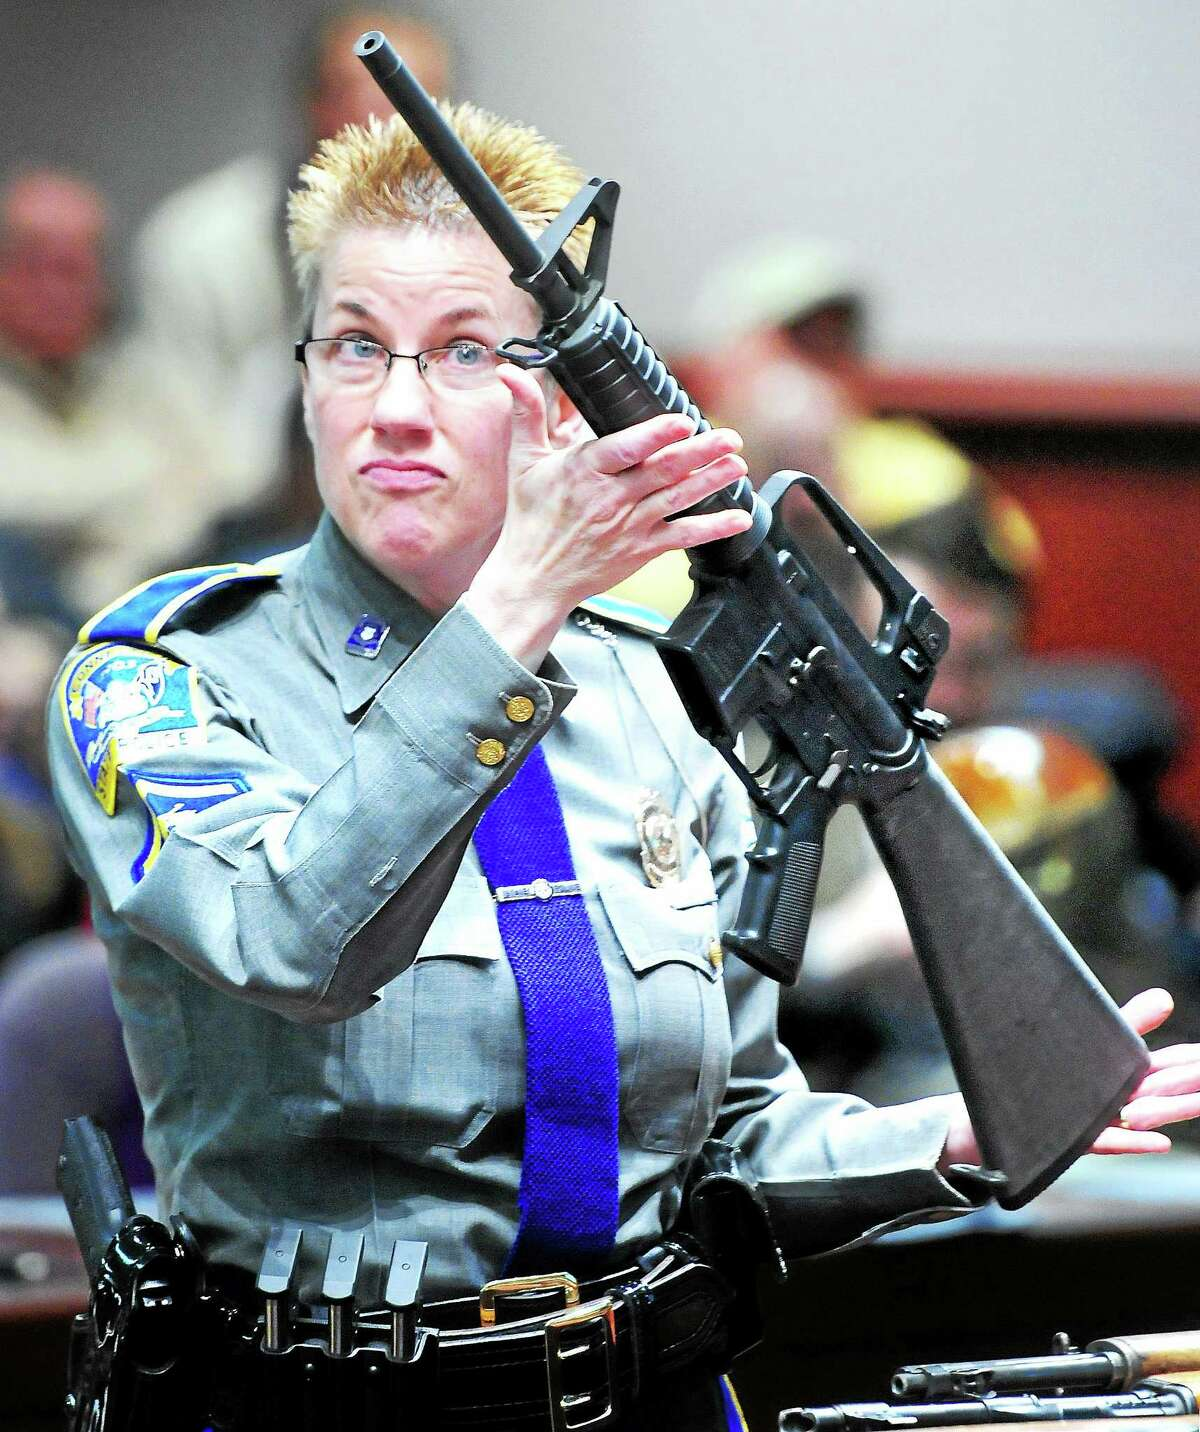 Connecticut State Police Detective Barbara Mattson holds up a Bushmaster rifle during a legislative hearing about gun control at the Legislative Office Building in Hartford on Jan. 28, 2013.